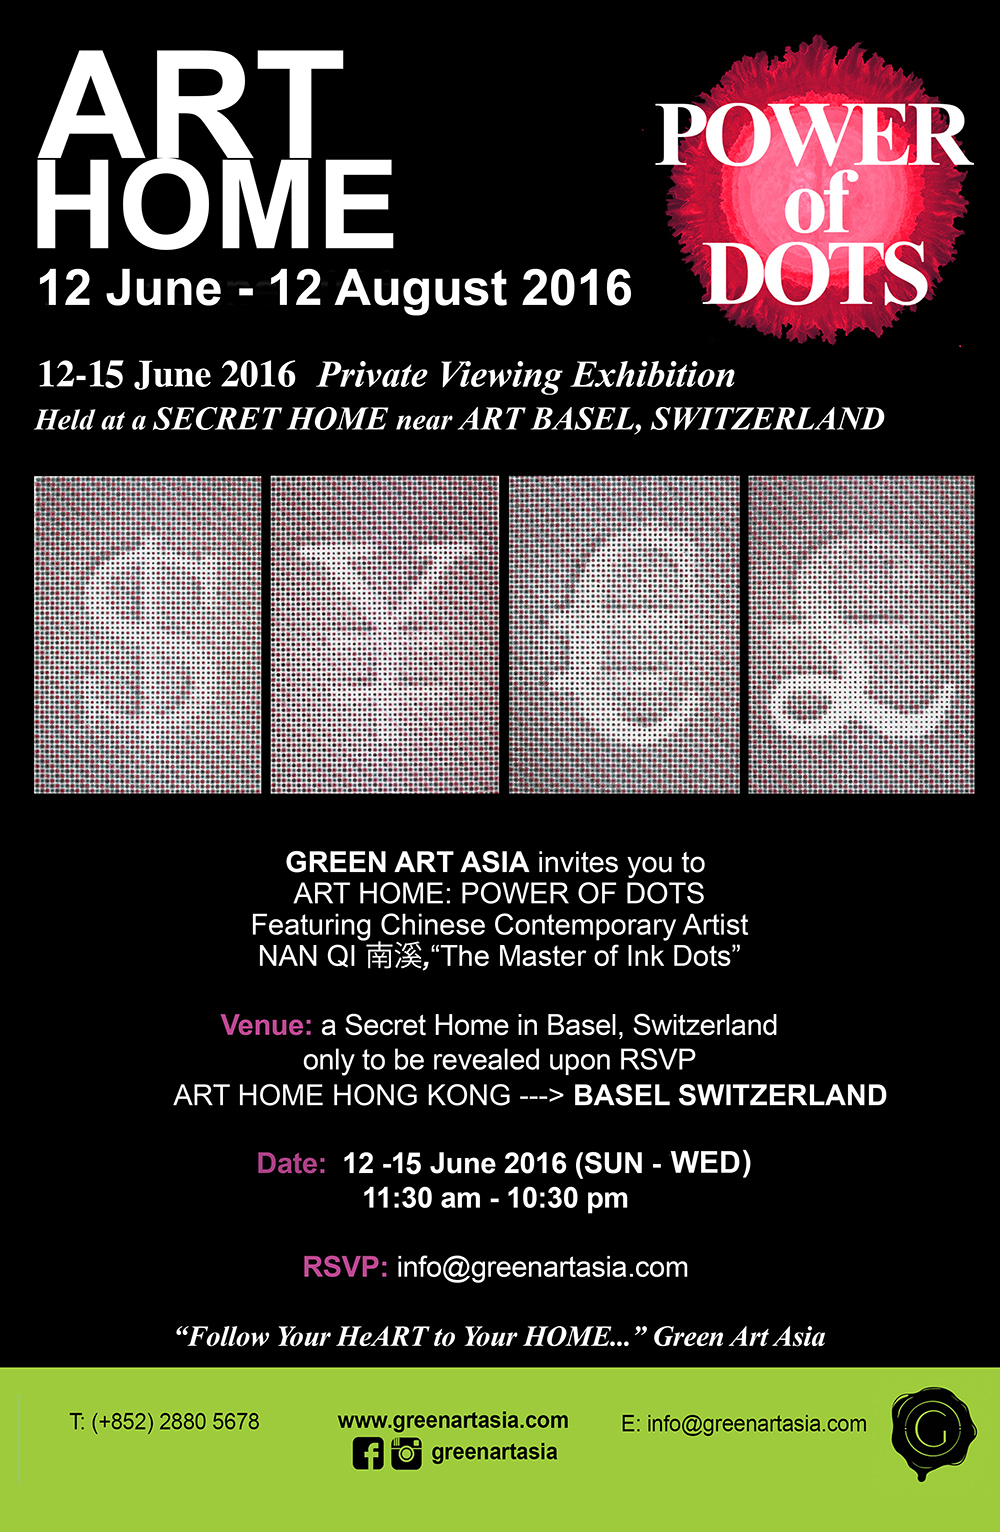 Green Art Asia ART HOME POWER of DOTS in BASEL SWIZTERLAND